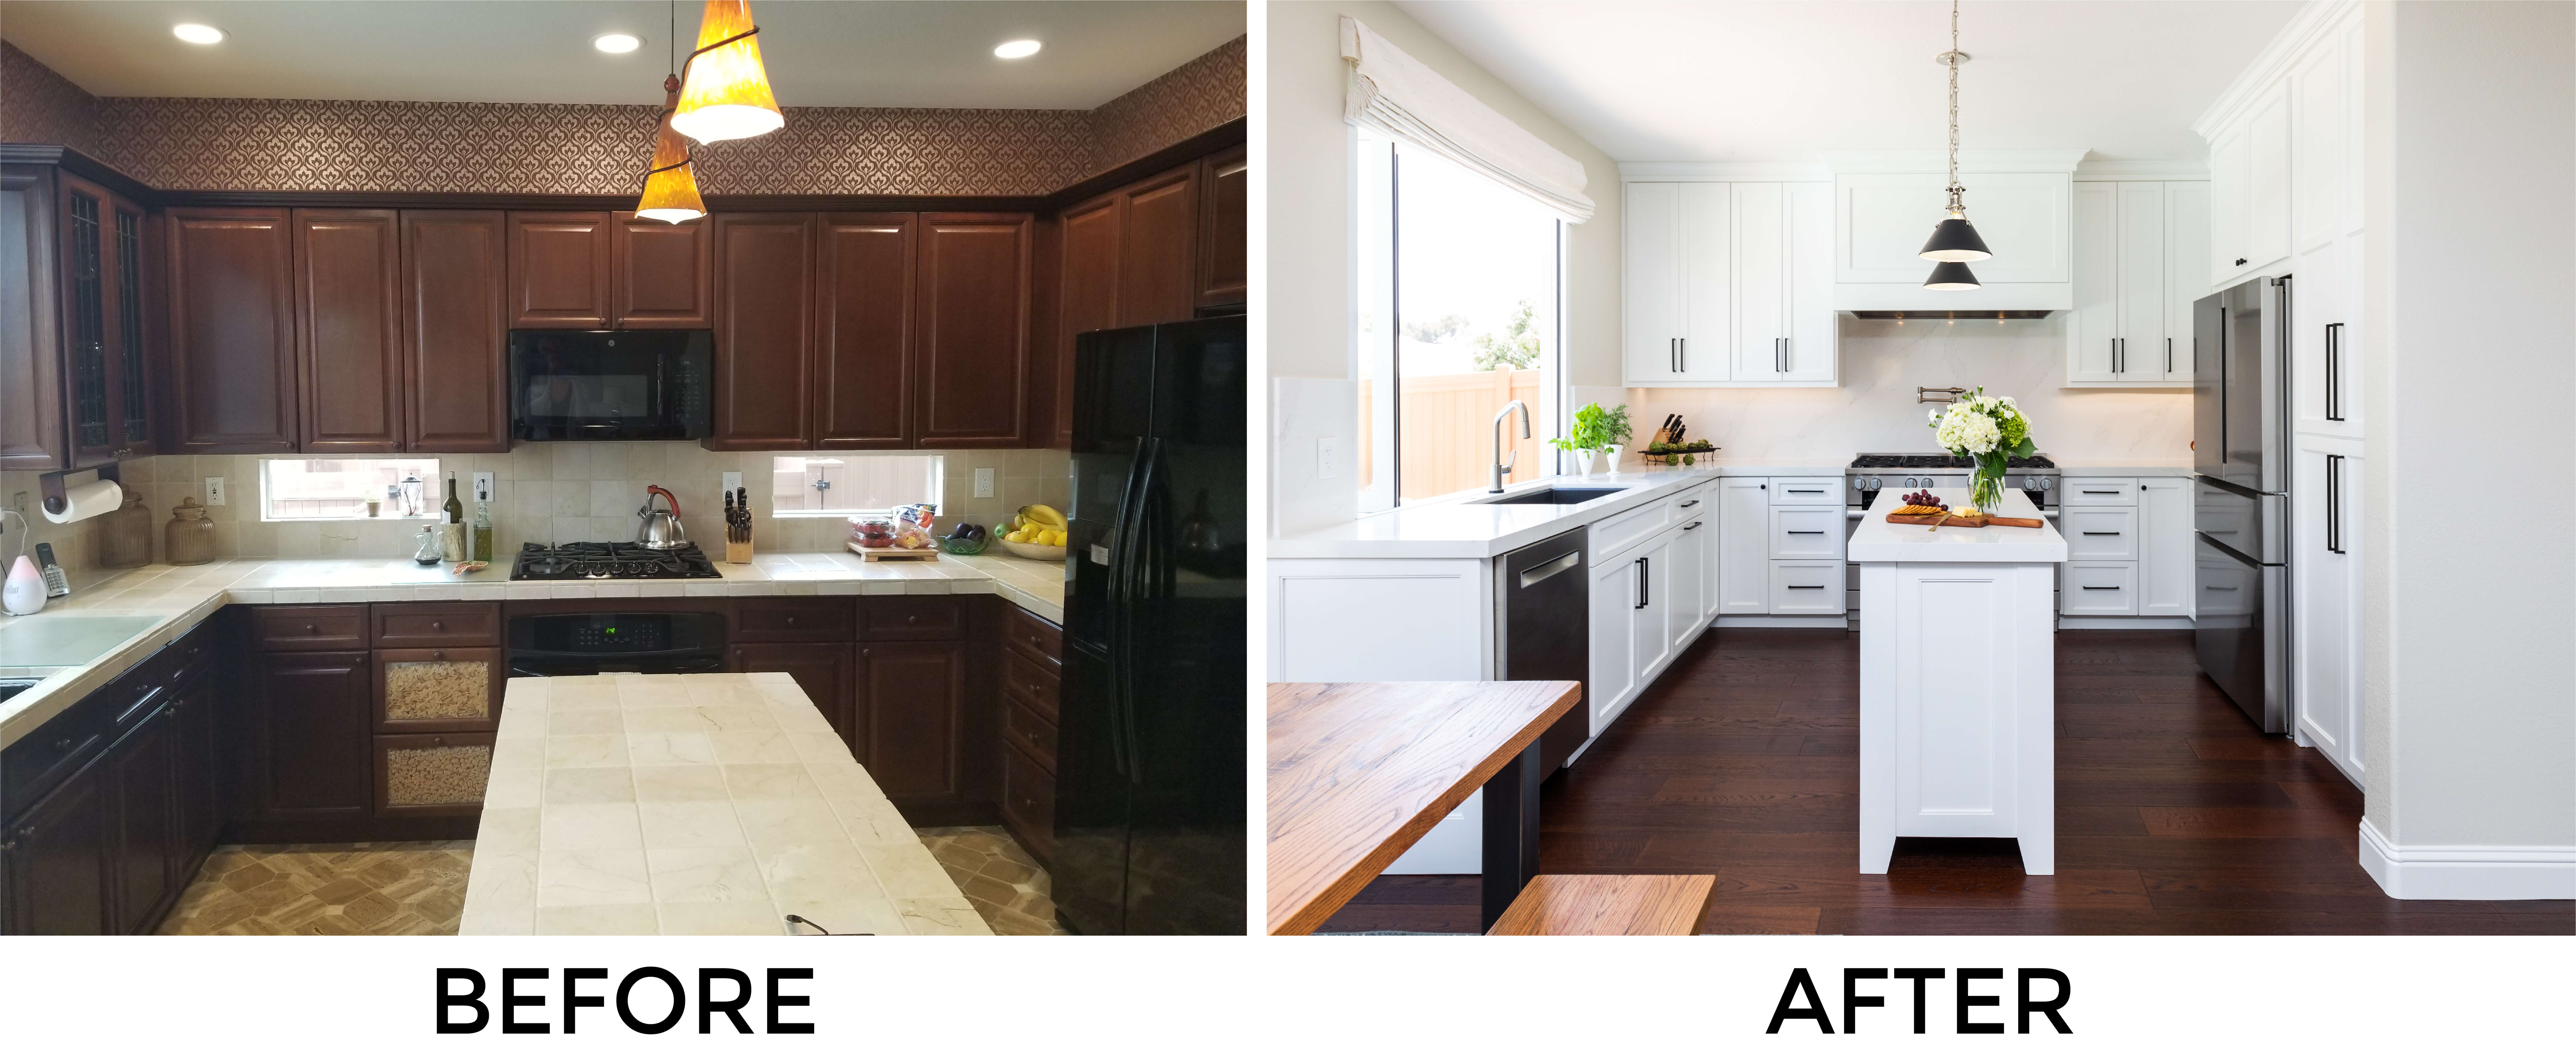 Simply Stunning Spaces Before and after